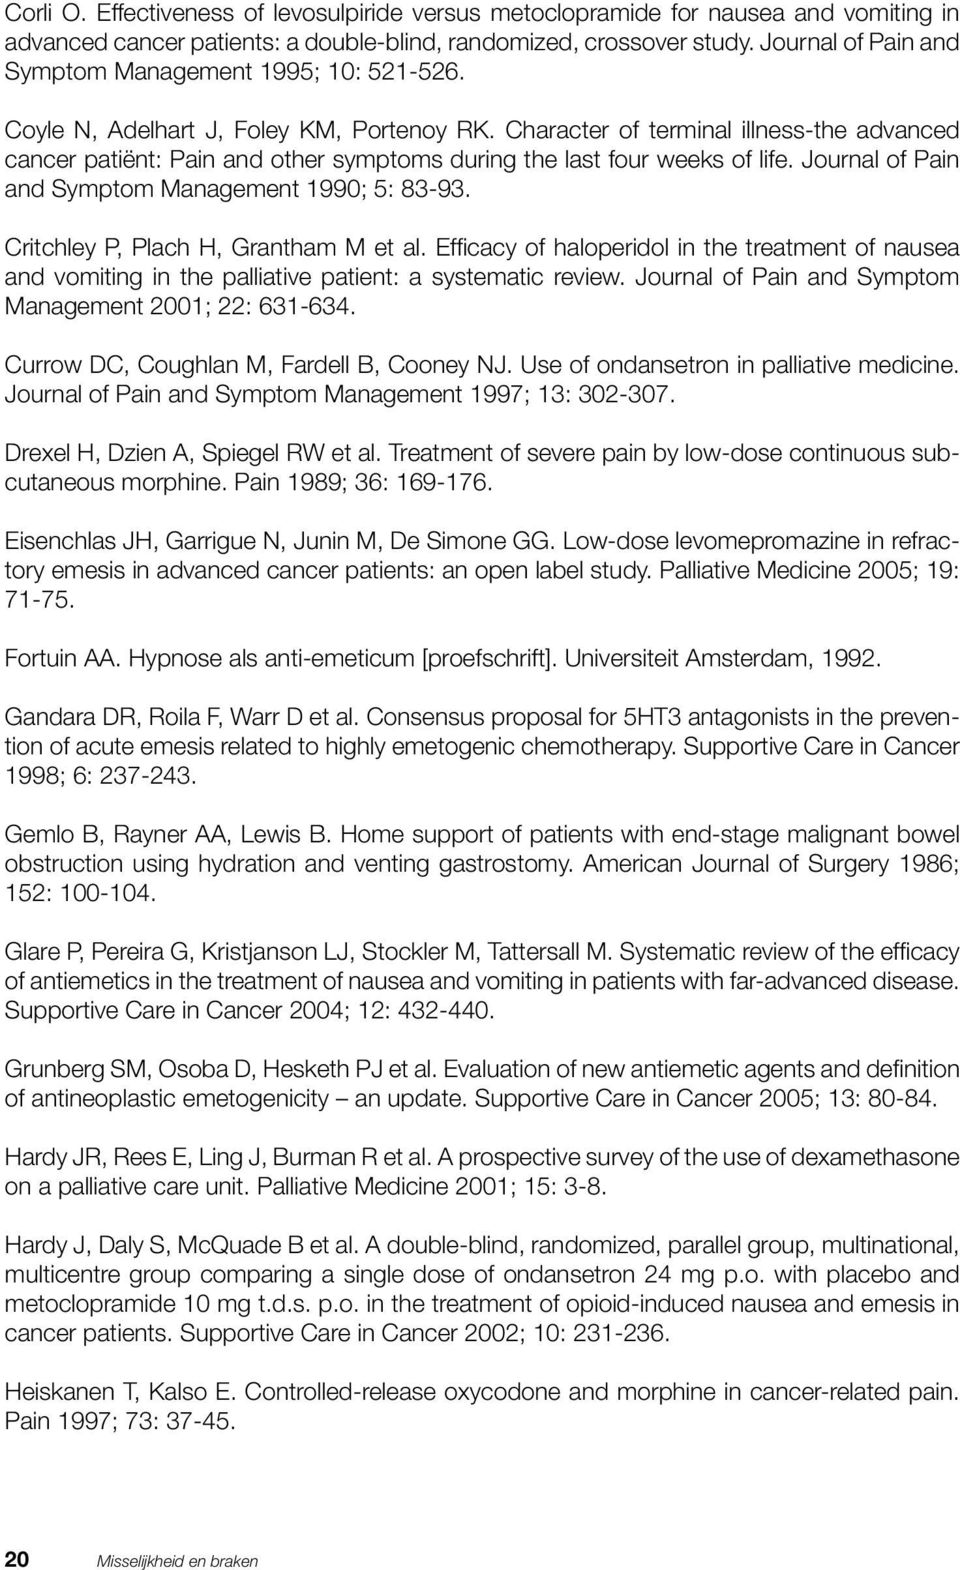 Character of terminal illness-the advanced cancer patiënt: Pain and other symptoms during the last four weeks of life. Journal of Pain and Symptom Management 1990; 5: 83-93.